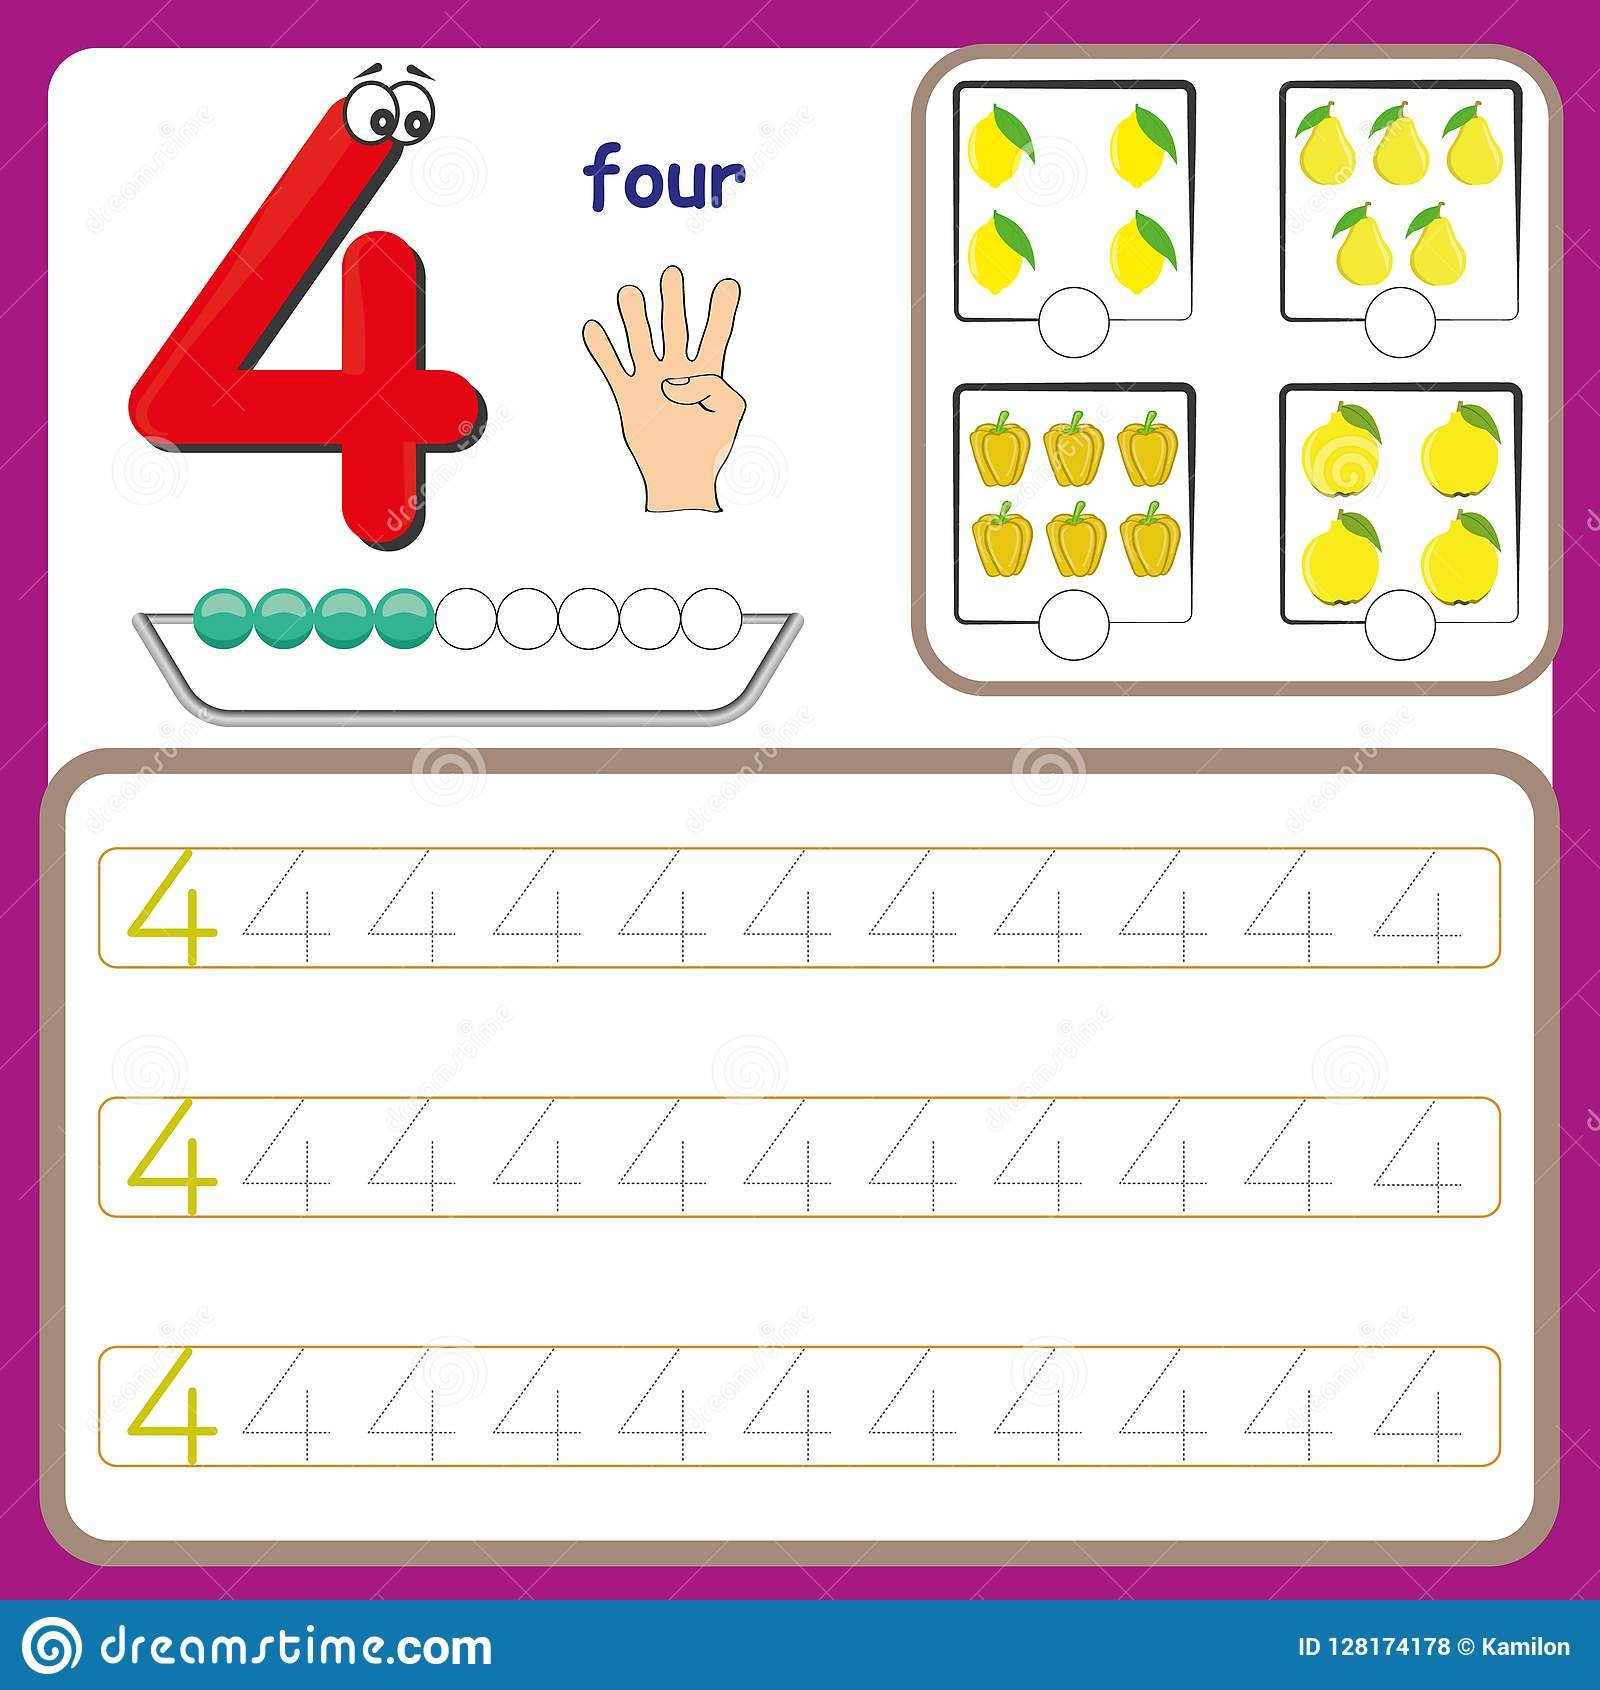 Number Tracing Worksheets for Kindergarten Number Cards Counting and Writing Numbers Learning Numbers